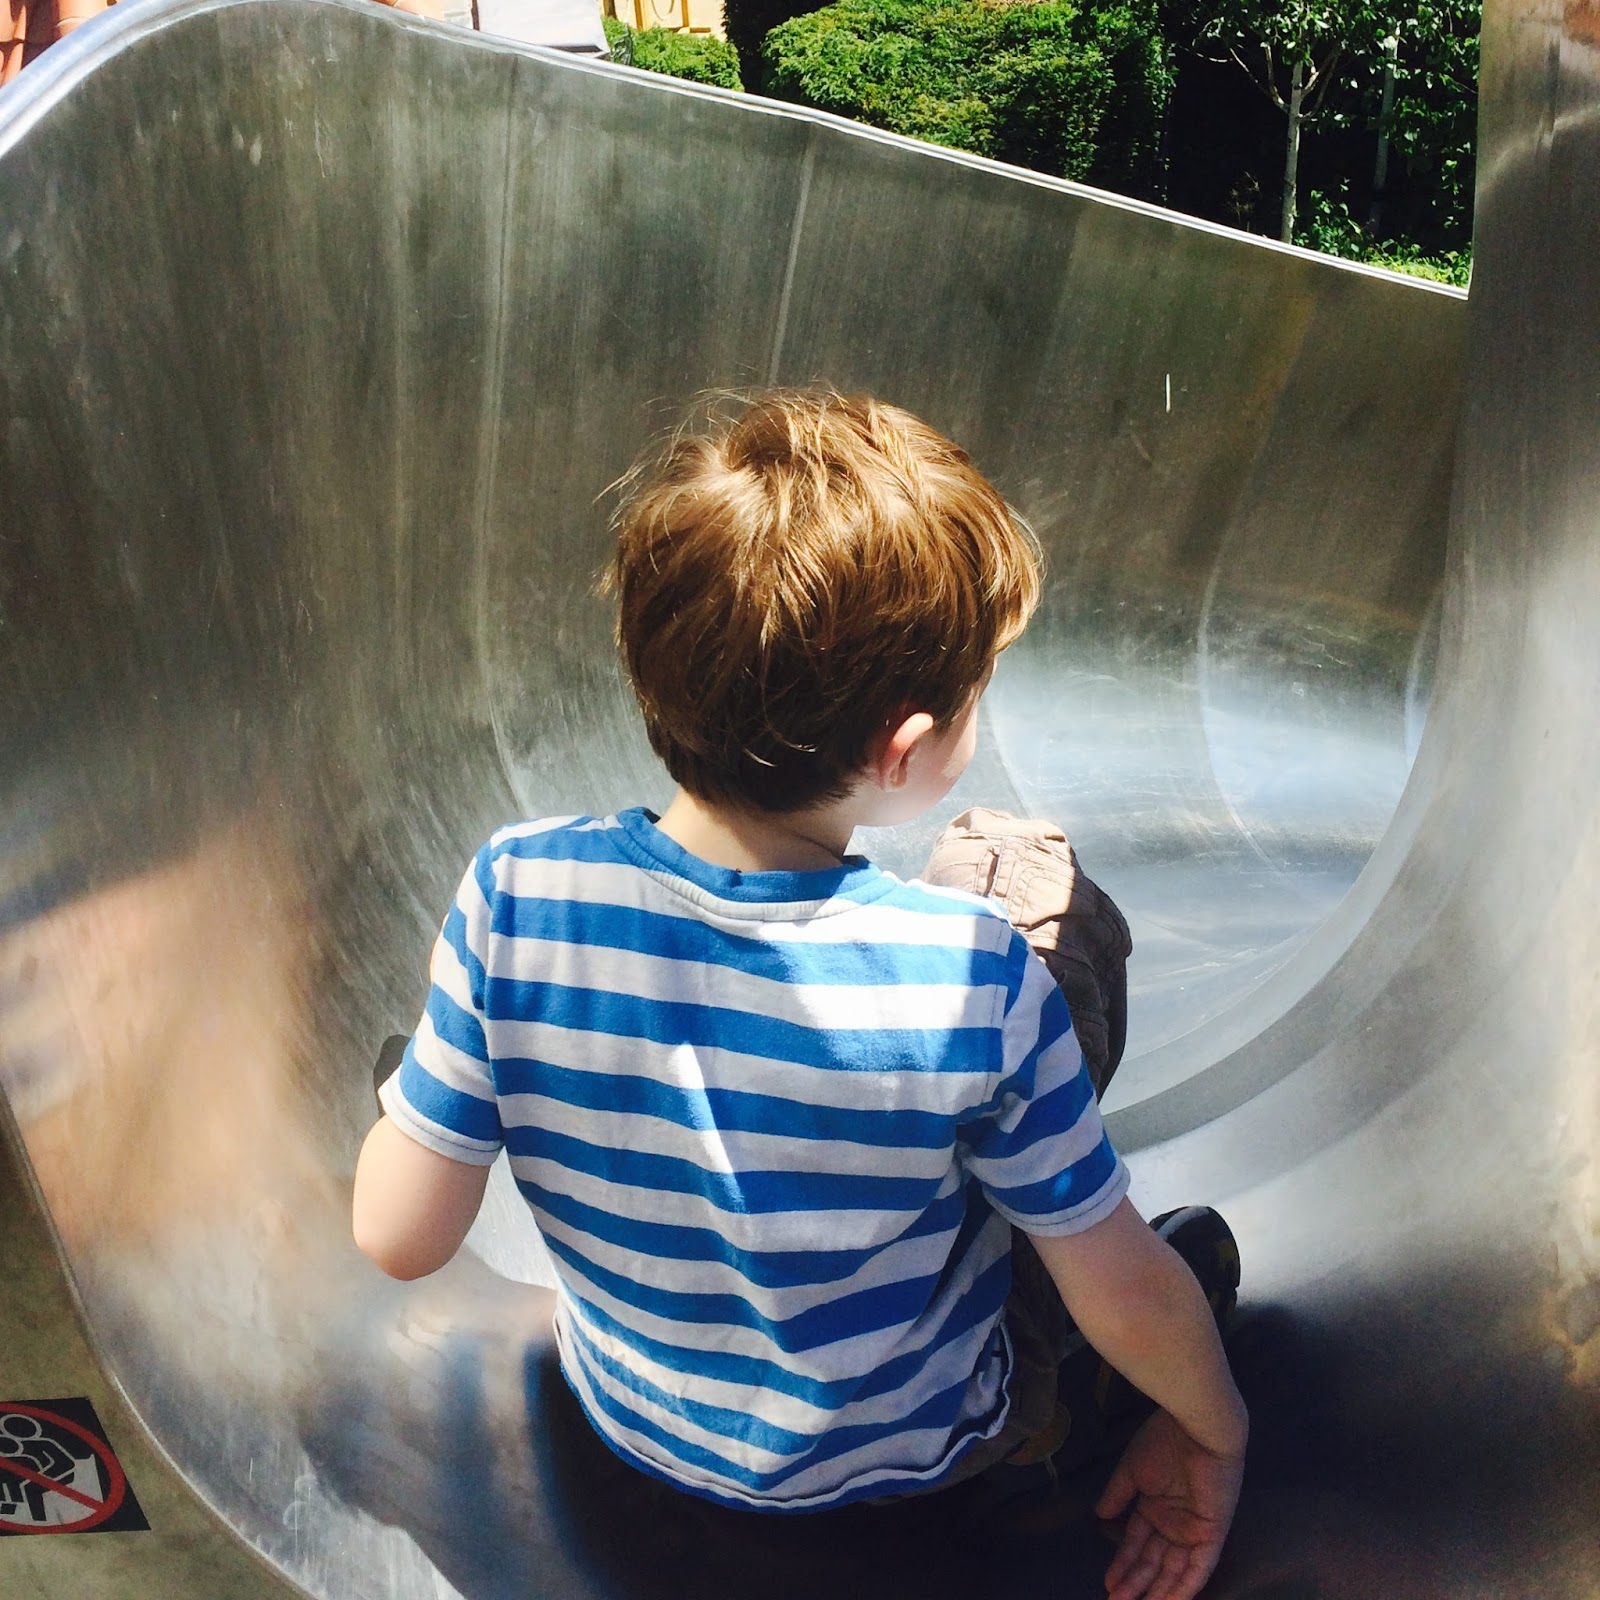 'AutismParenting: Never underestimate the value of routine', David on a slide